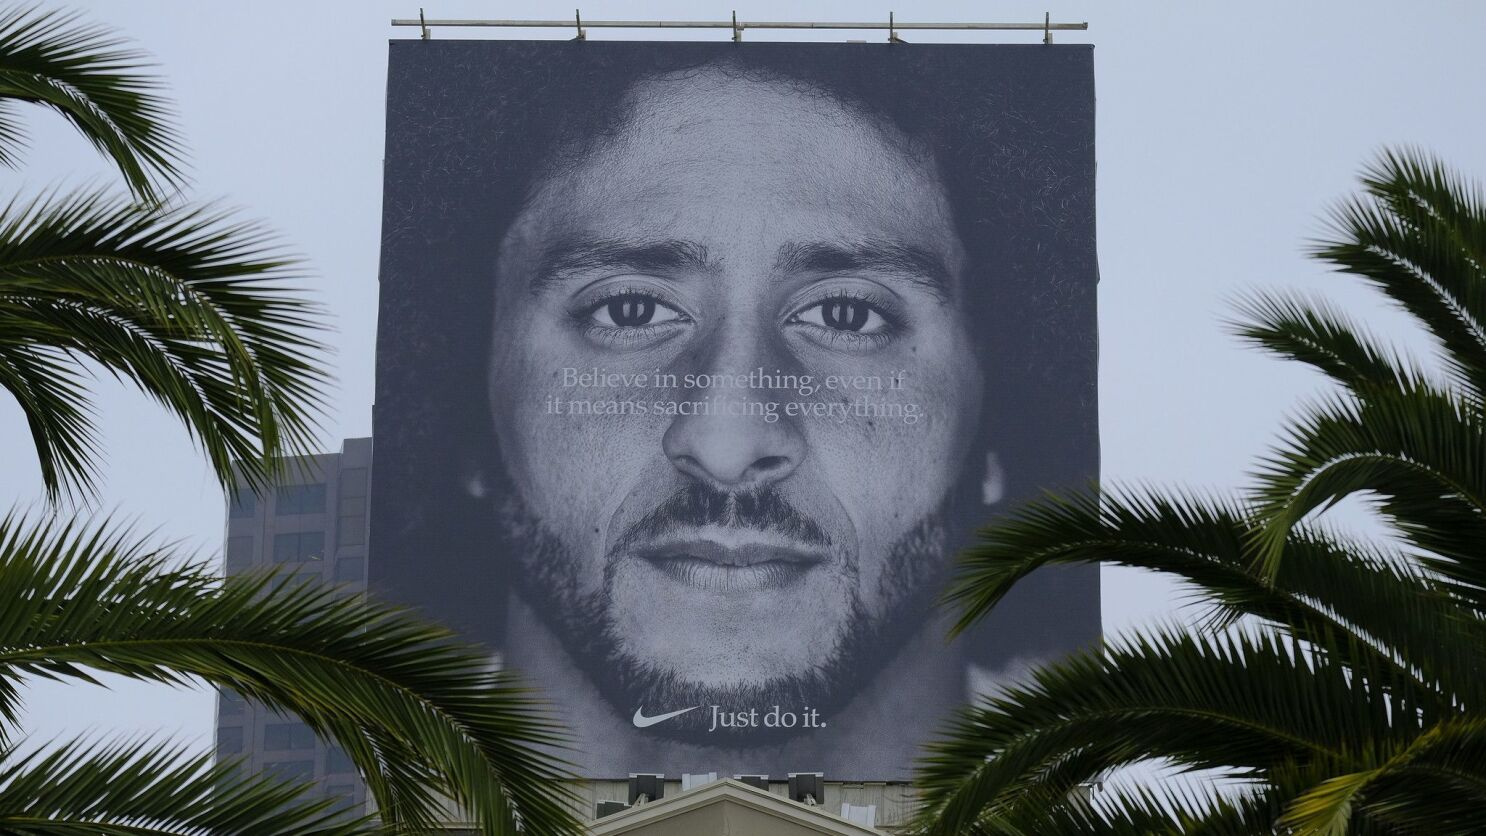 Store Wouldn T Sell Nike Gear After Colin Kaepernick Ad Now It S Going Out Of Business Los Angeles Times